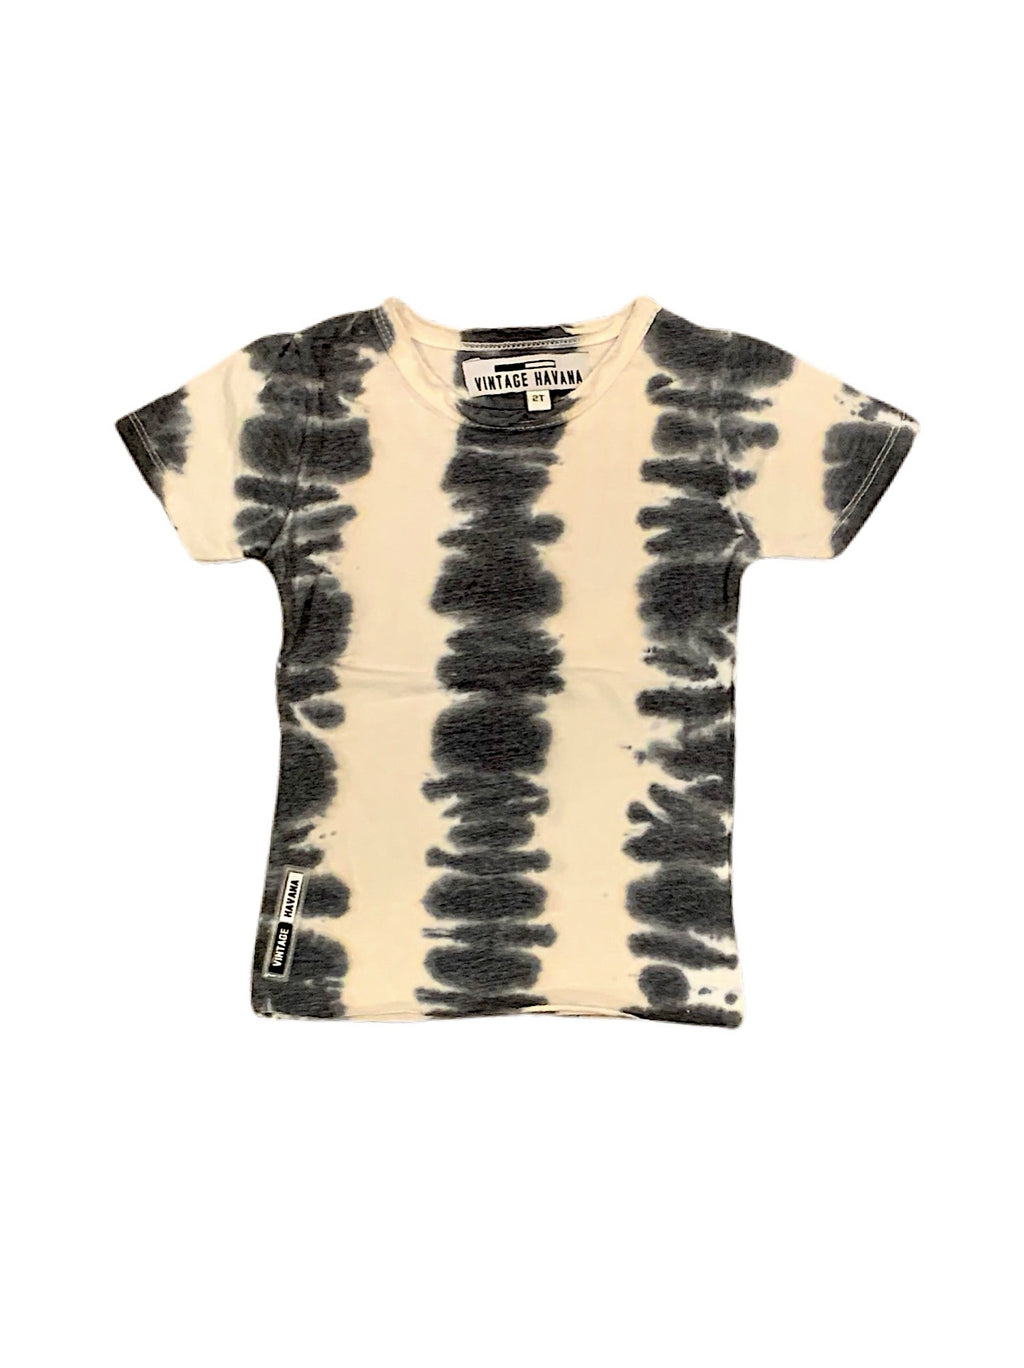 Vintage Havana Boys Black and White Tie Dye Tee Shirt